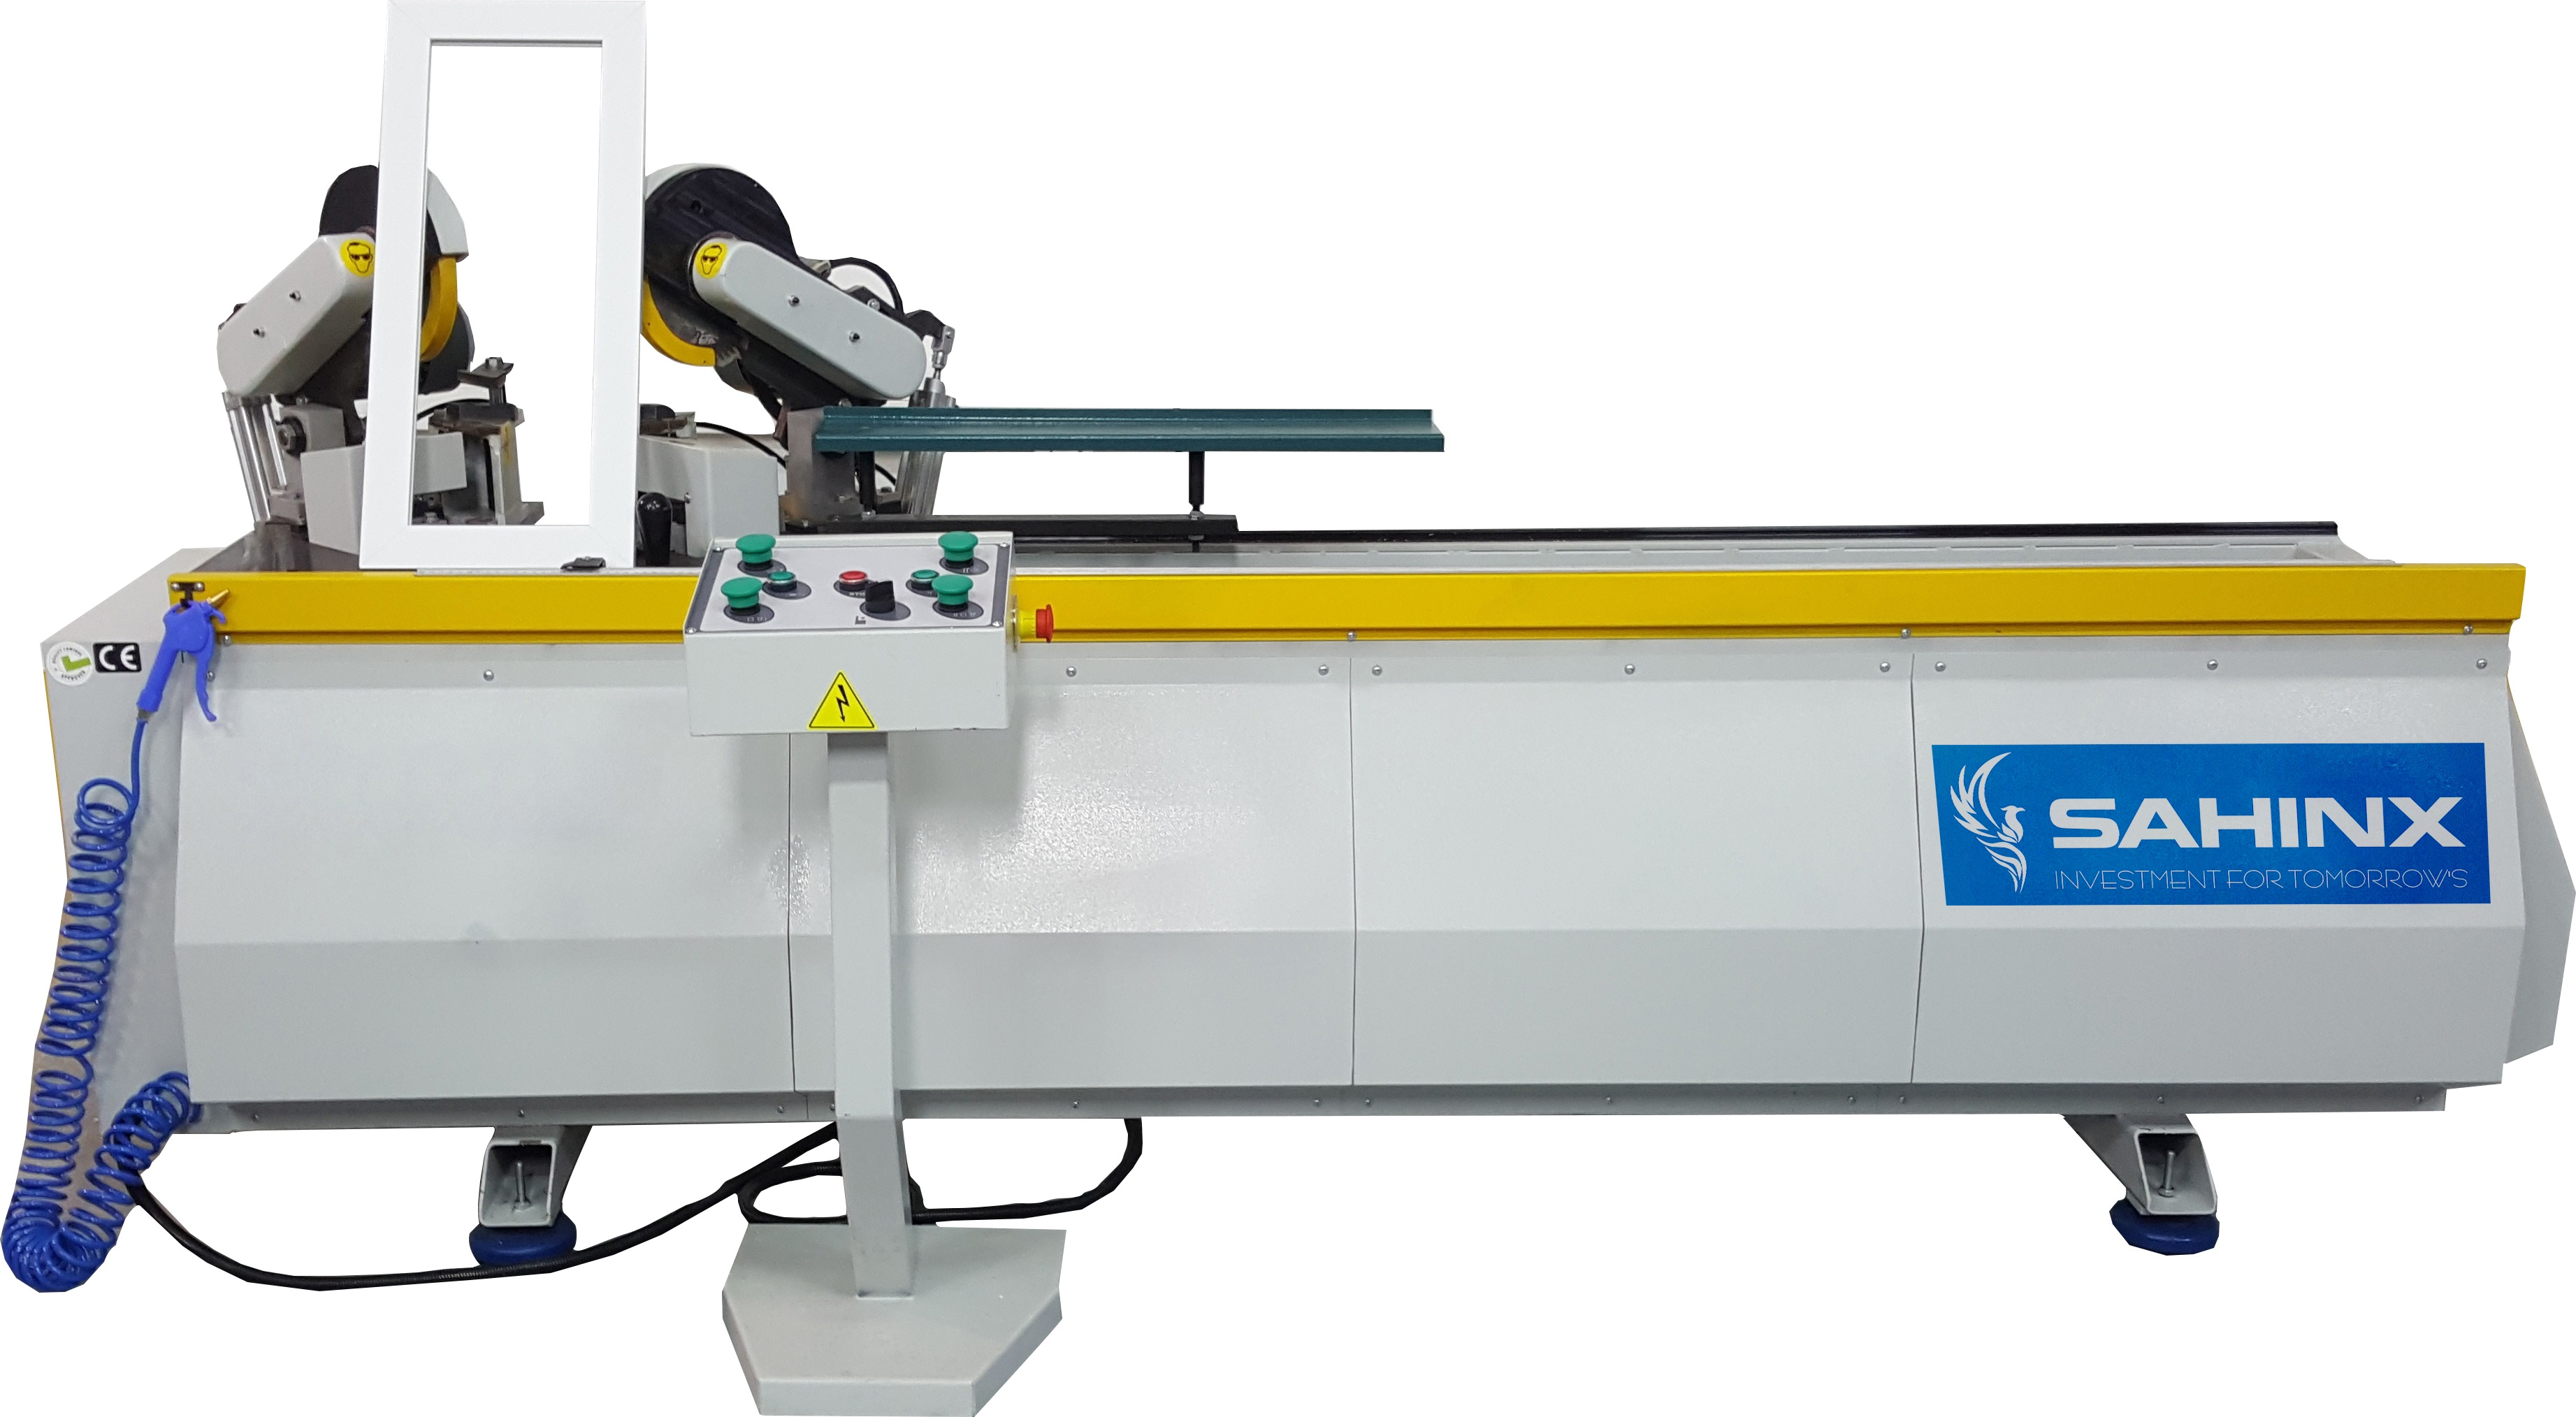 WDE 200 DOUBLE MITER CUTTING & MORTISE